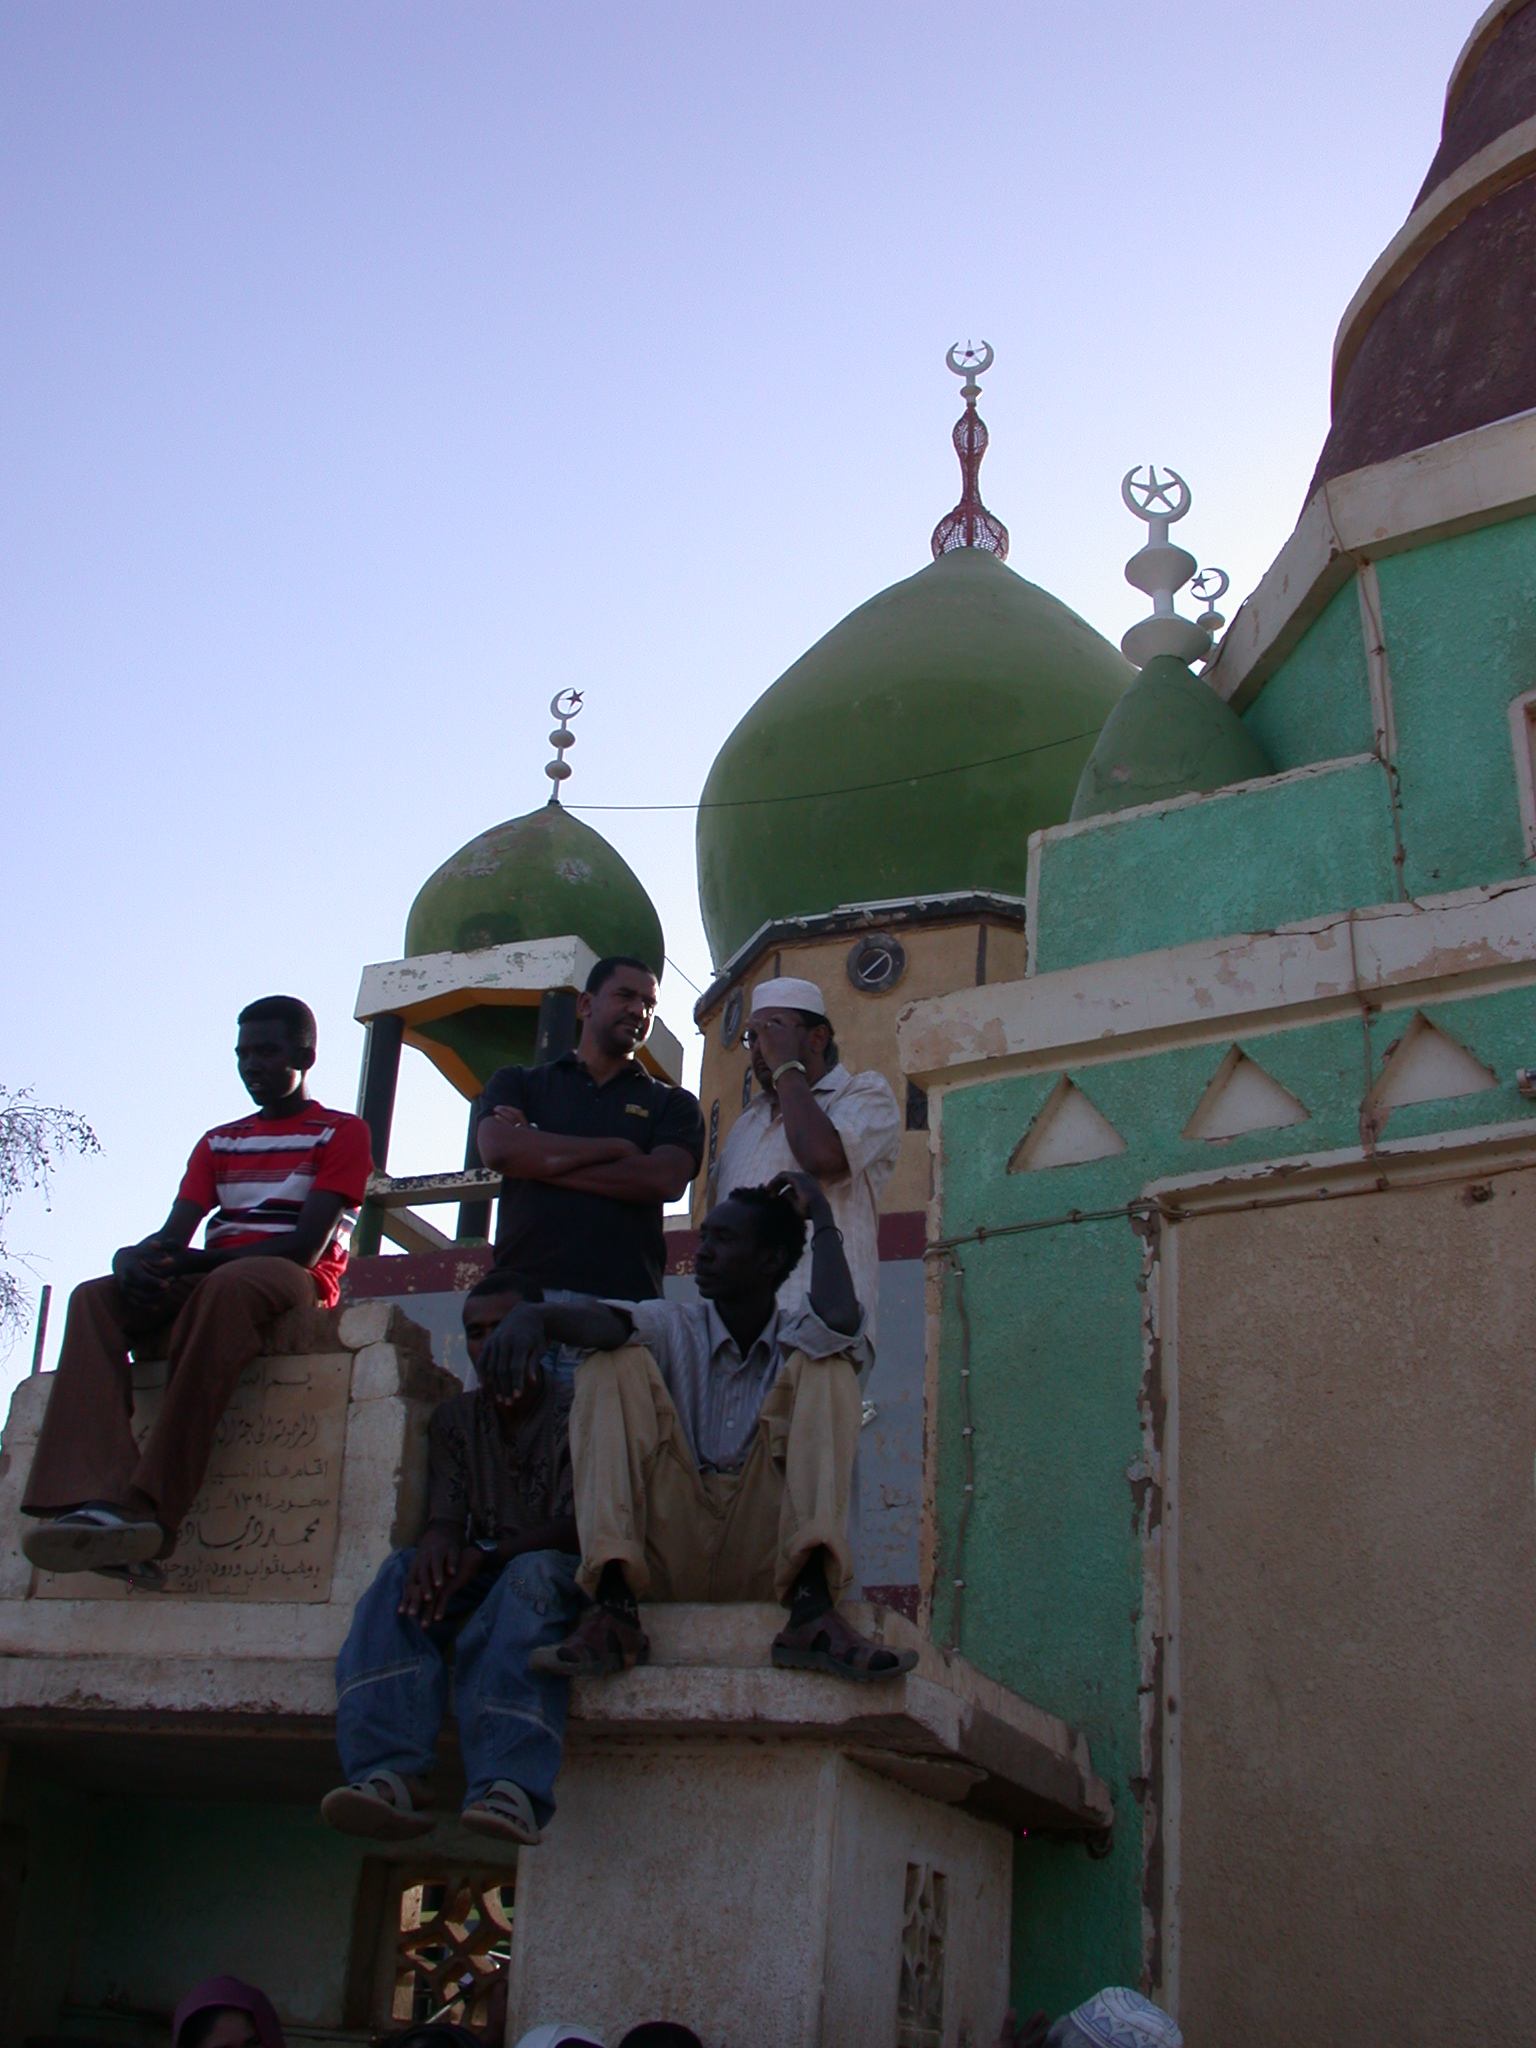 Guys Sitting on Tomb Structures at Sufi Dancing Site, Omdurman, Sudan